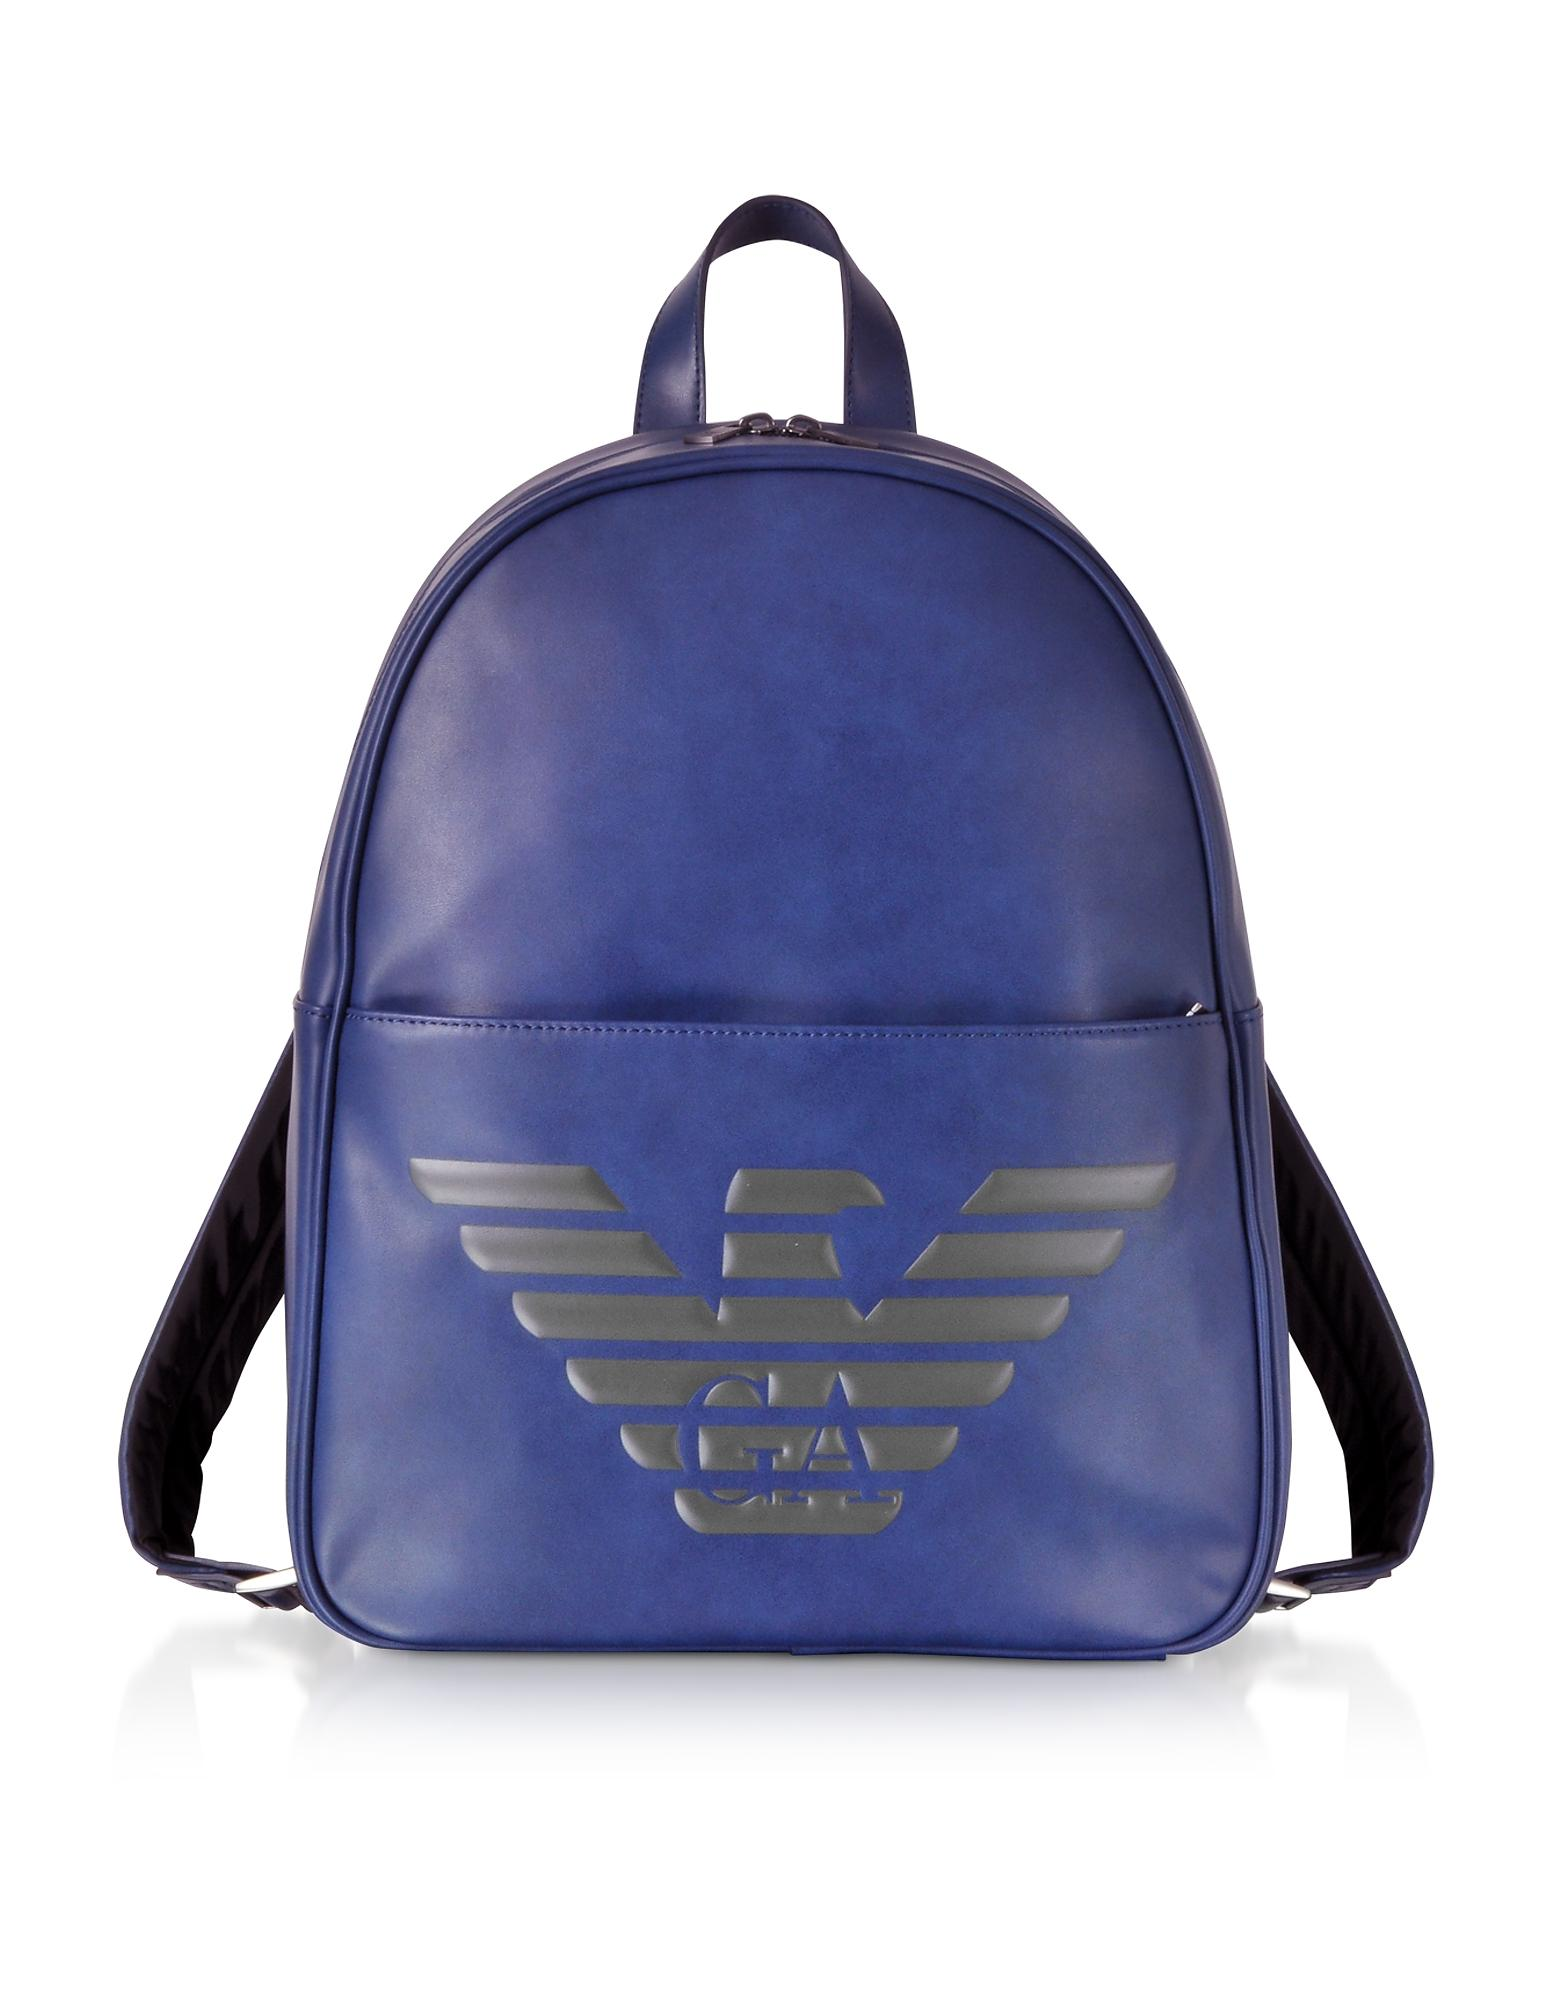 051be91ba744 Lyst - Emporio Armani Blue Eagle Embossed Eco Leather Men s Backpack ...